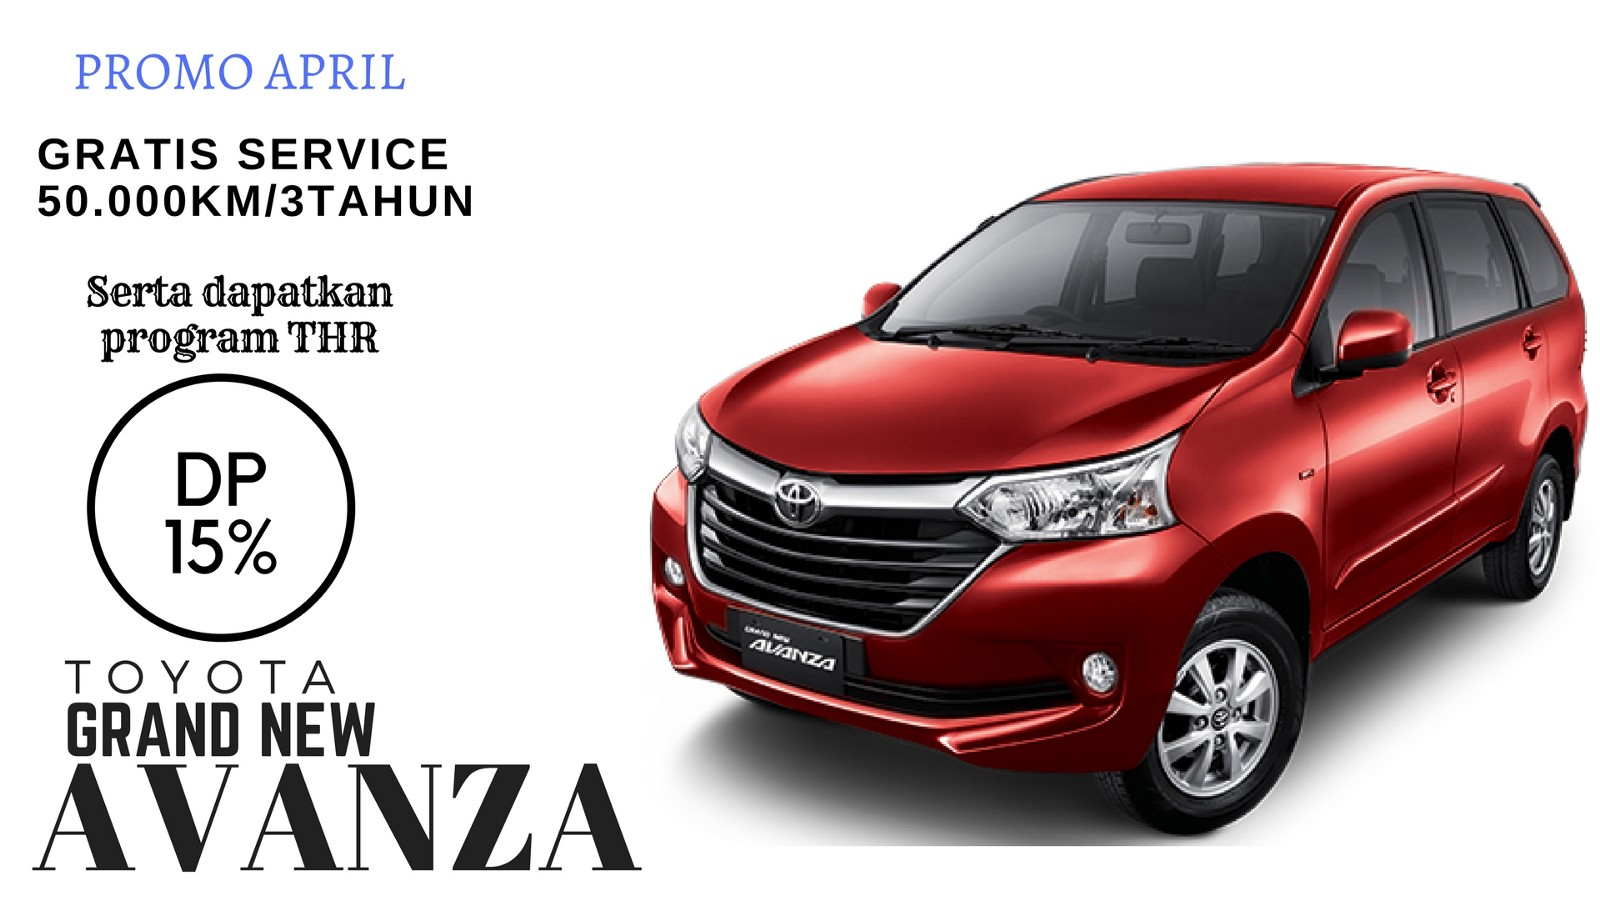 grand new avanza 2018 putih cutting sticker mobil toyota best mpv info pemesanan 085263705005